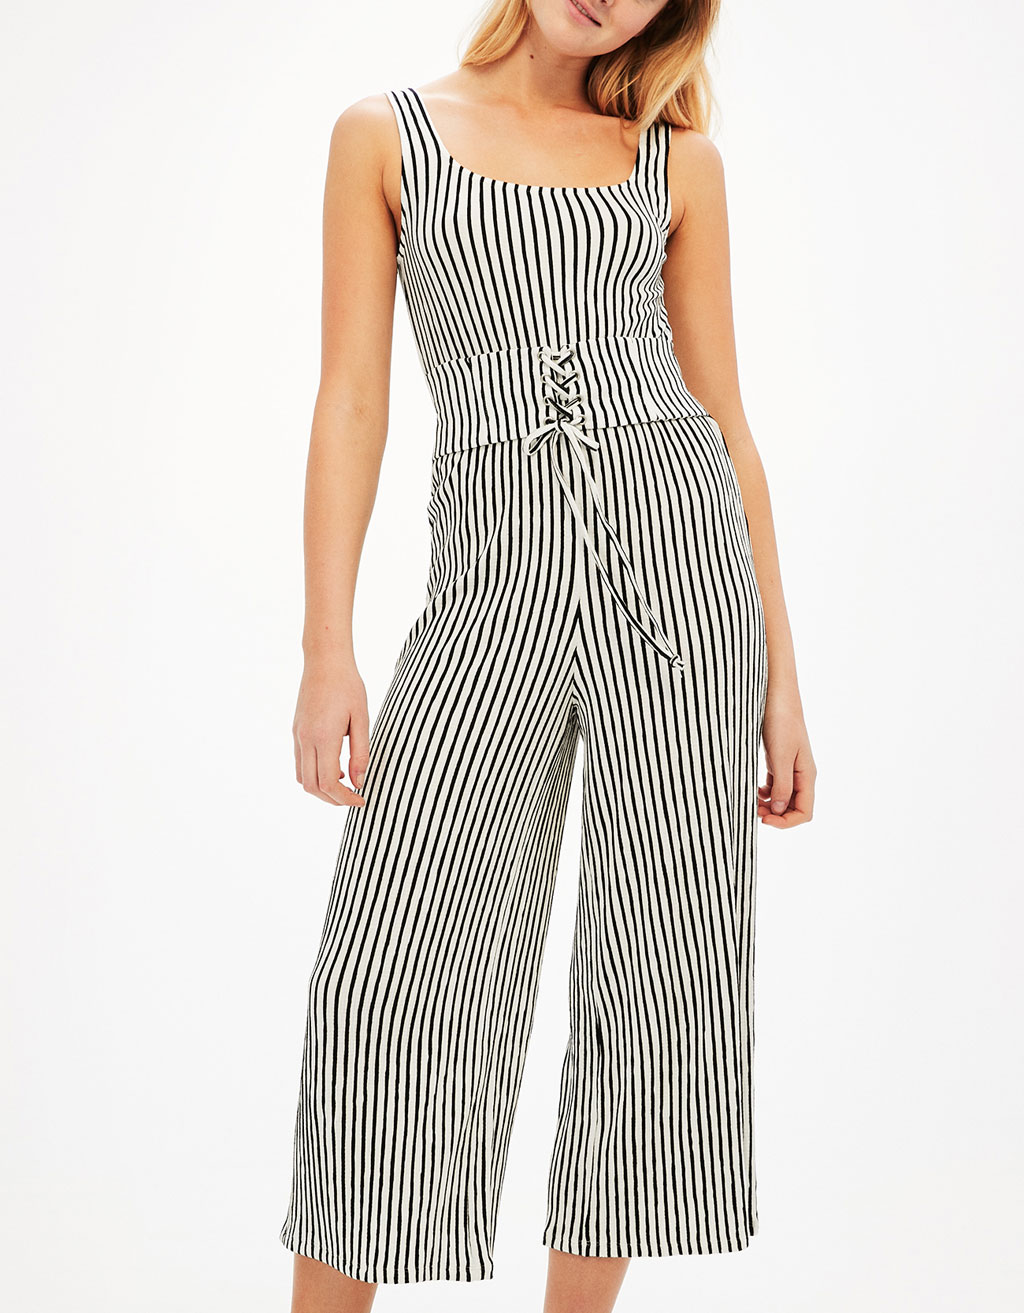 Long jumpsuit with corset sash belt